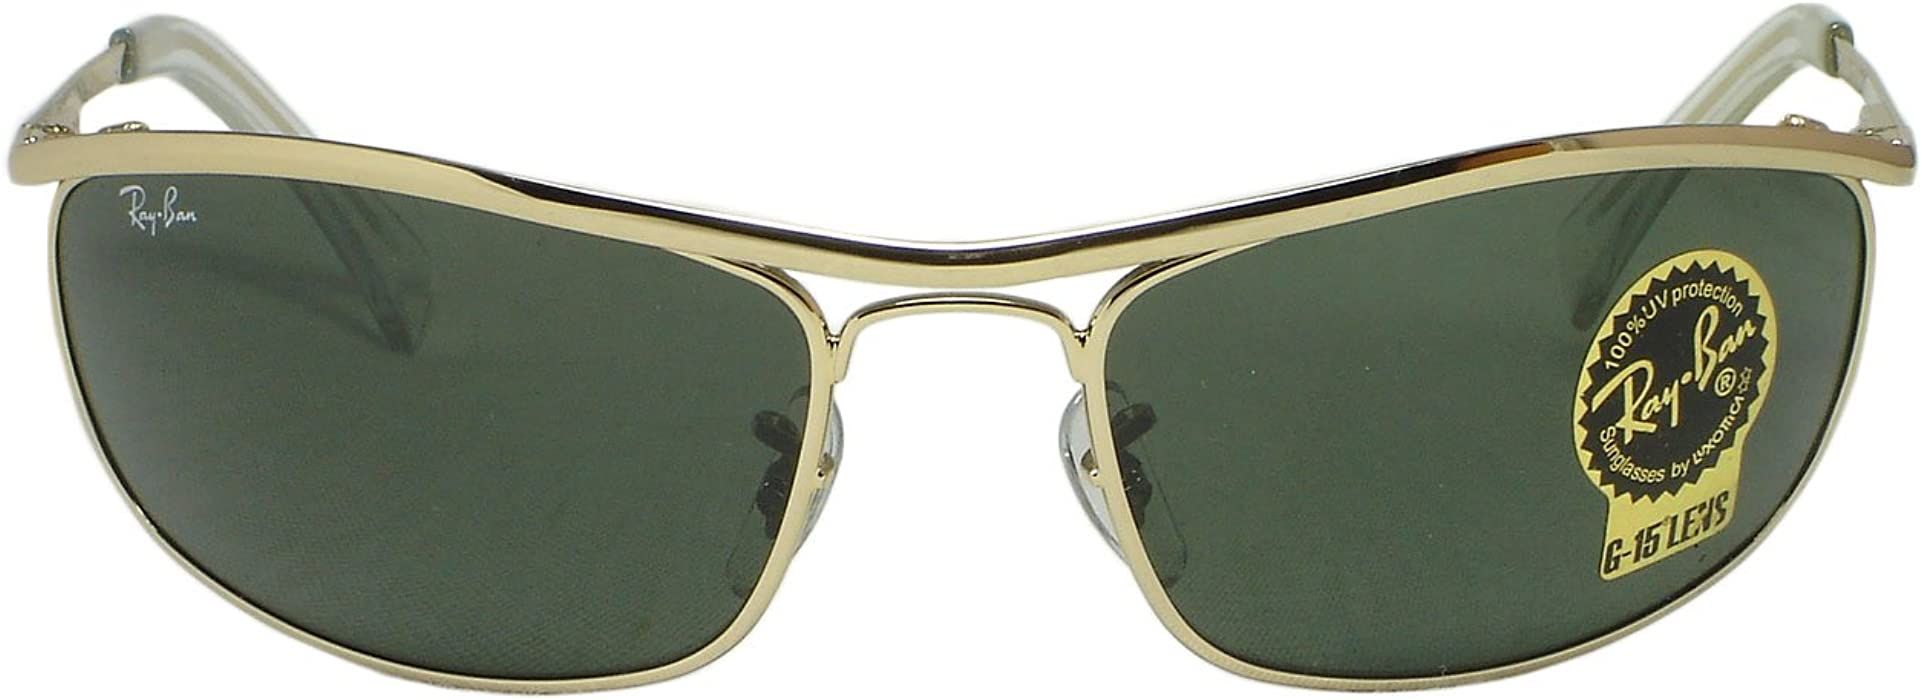 432bf3c6bd Amazon.com  Ray Ban RB3119 Olympian 001 Gold Sunglasses 62mm  Clothing